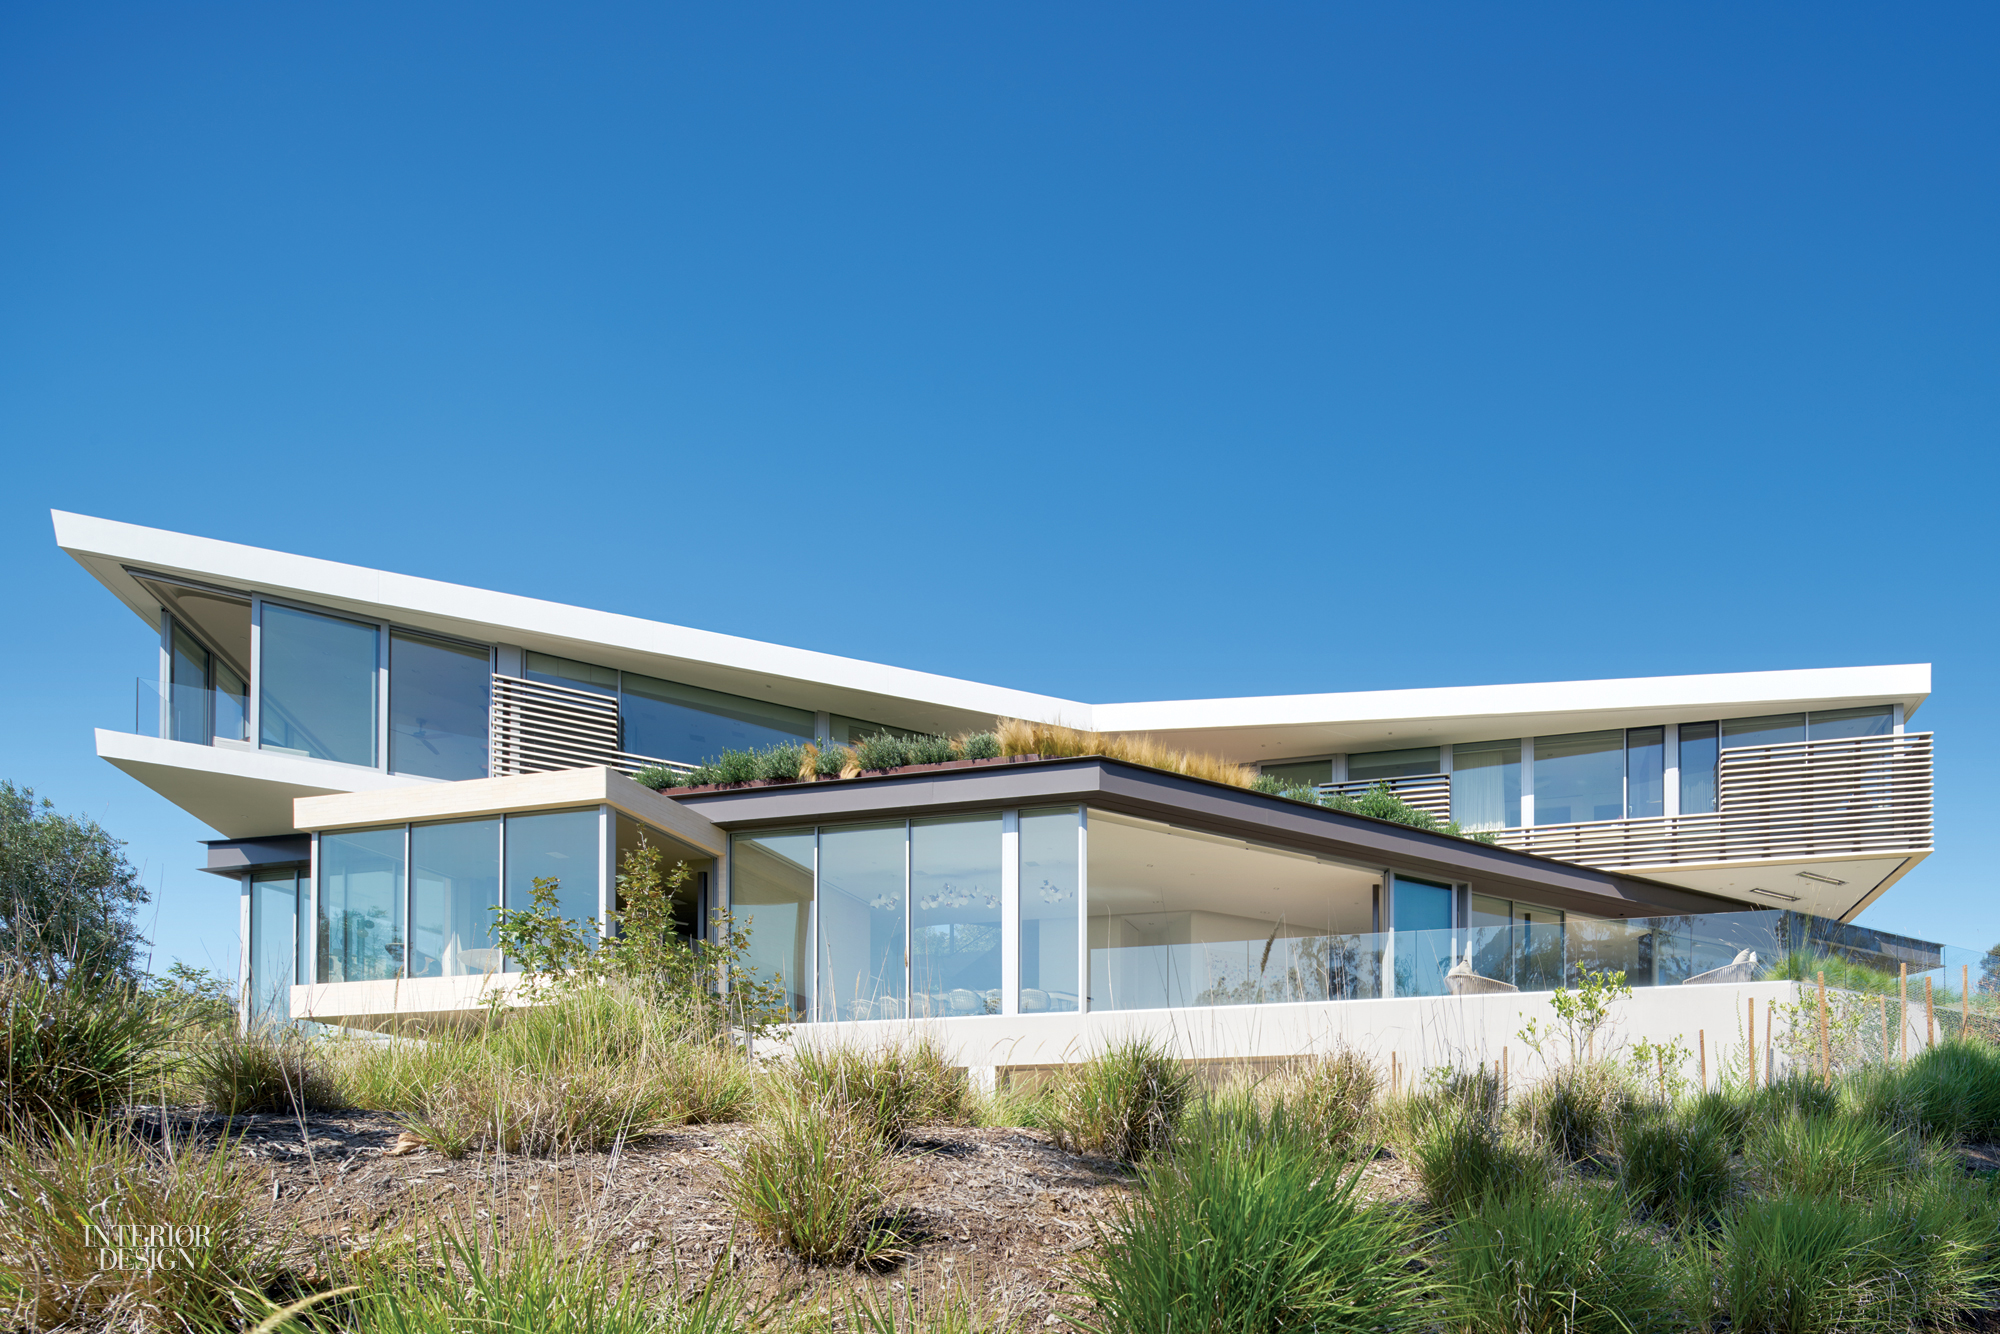 A massive los angeles house by hagy belzberg and delta wright for Villa moderna